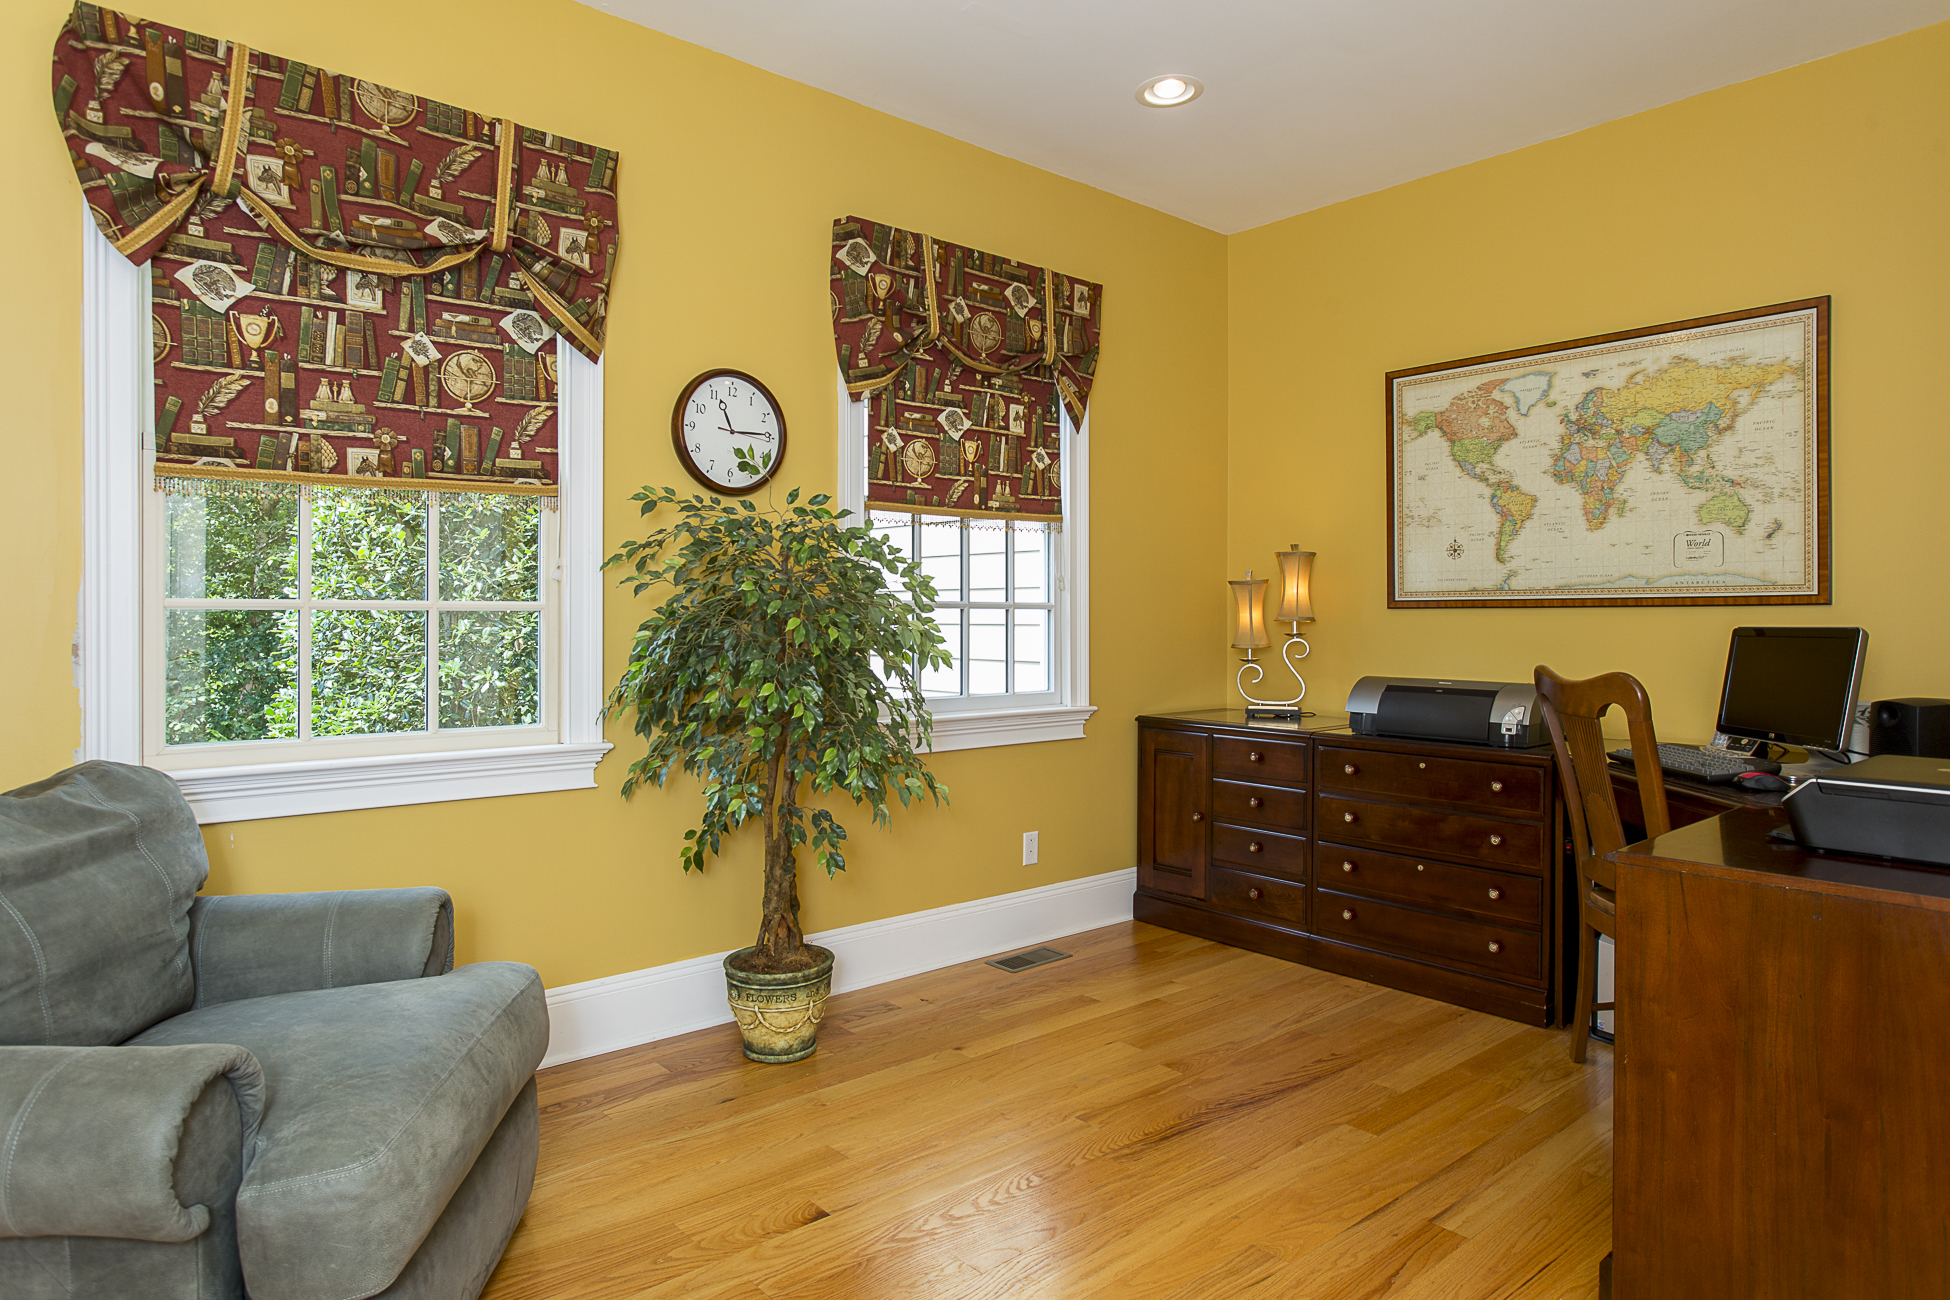 Additional photo for property listing at Delight In The Details - Montgomery Township 349 Grandview Road Skillman, Nueva Jersey 08558 Estados Unidos